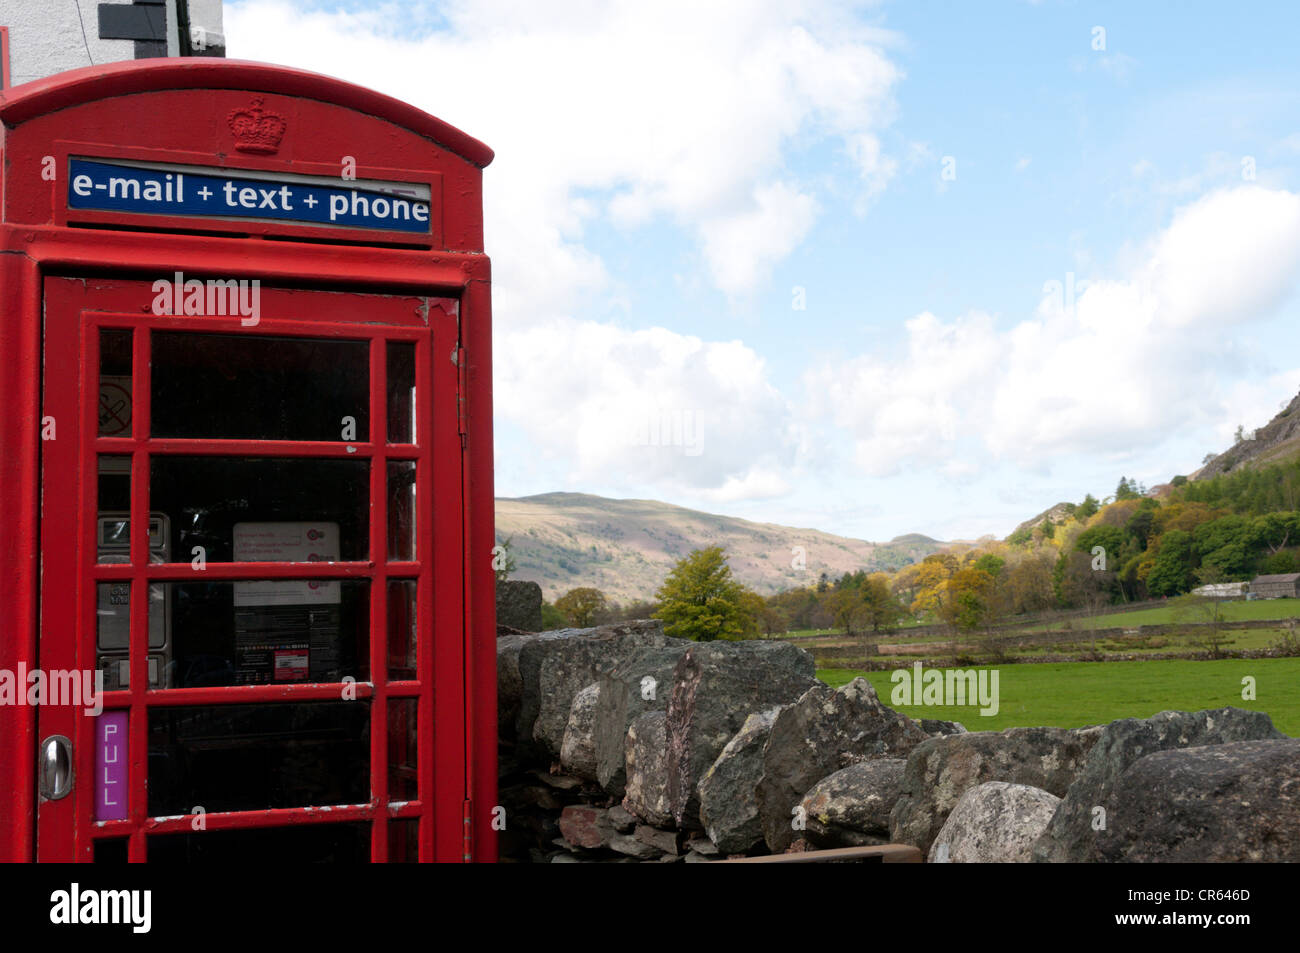 A red telephone box offering e-mail and text facilities in the Lake District village of Patterdale. - Stock Image